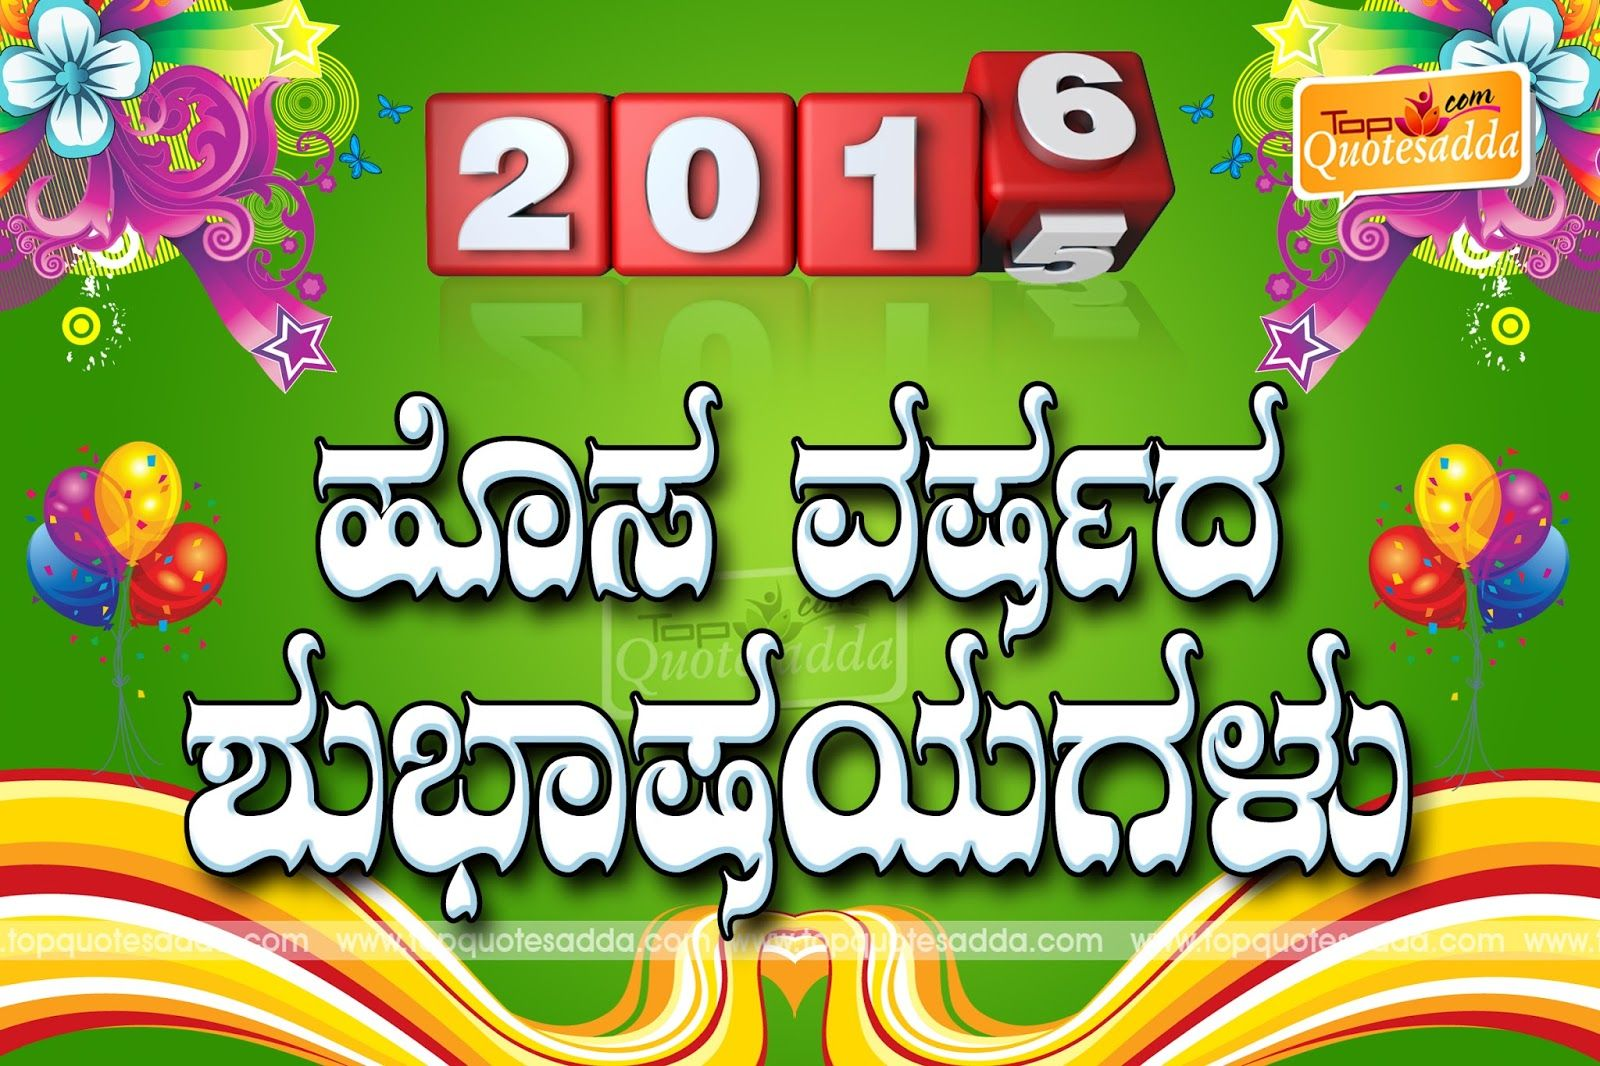 2016 happy new year wishes in kannada advance happy new year wallpapers in kannada language new kannada quotations and top wallpapers